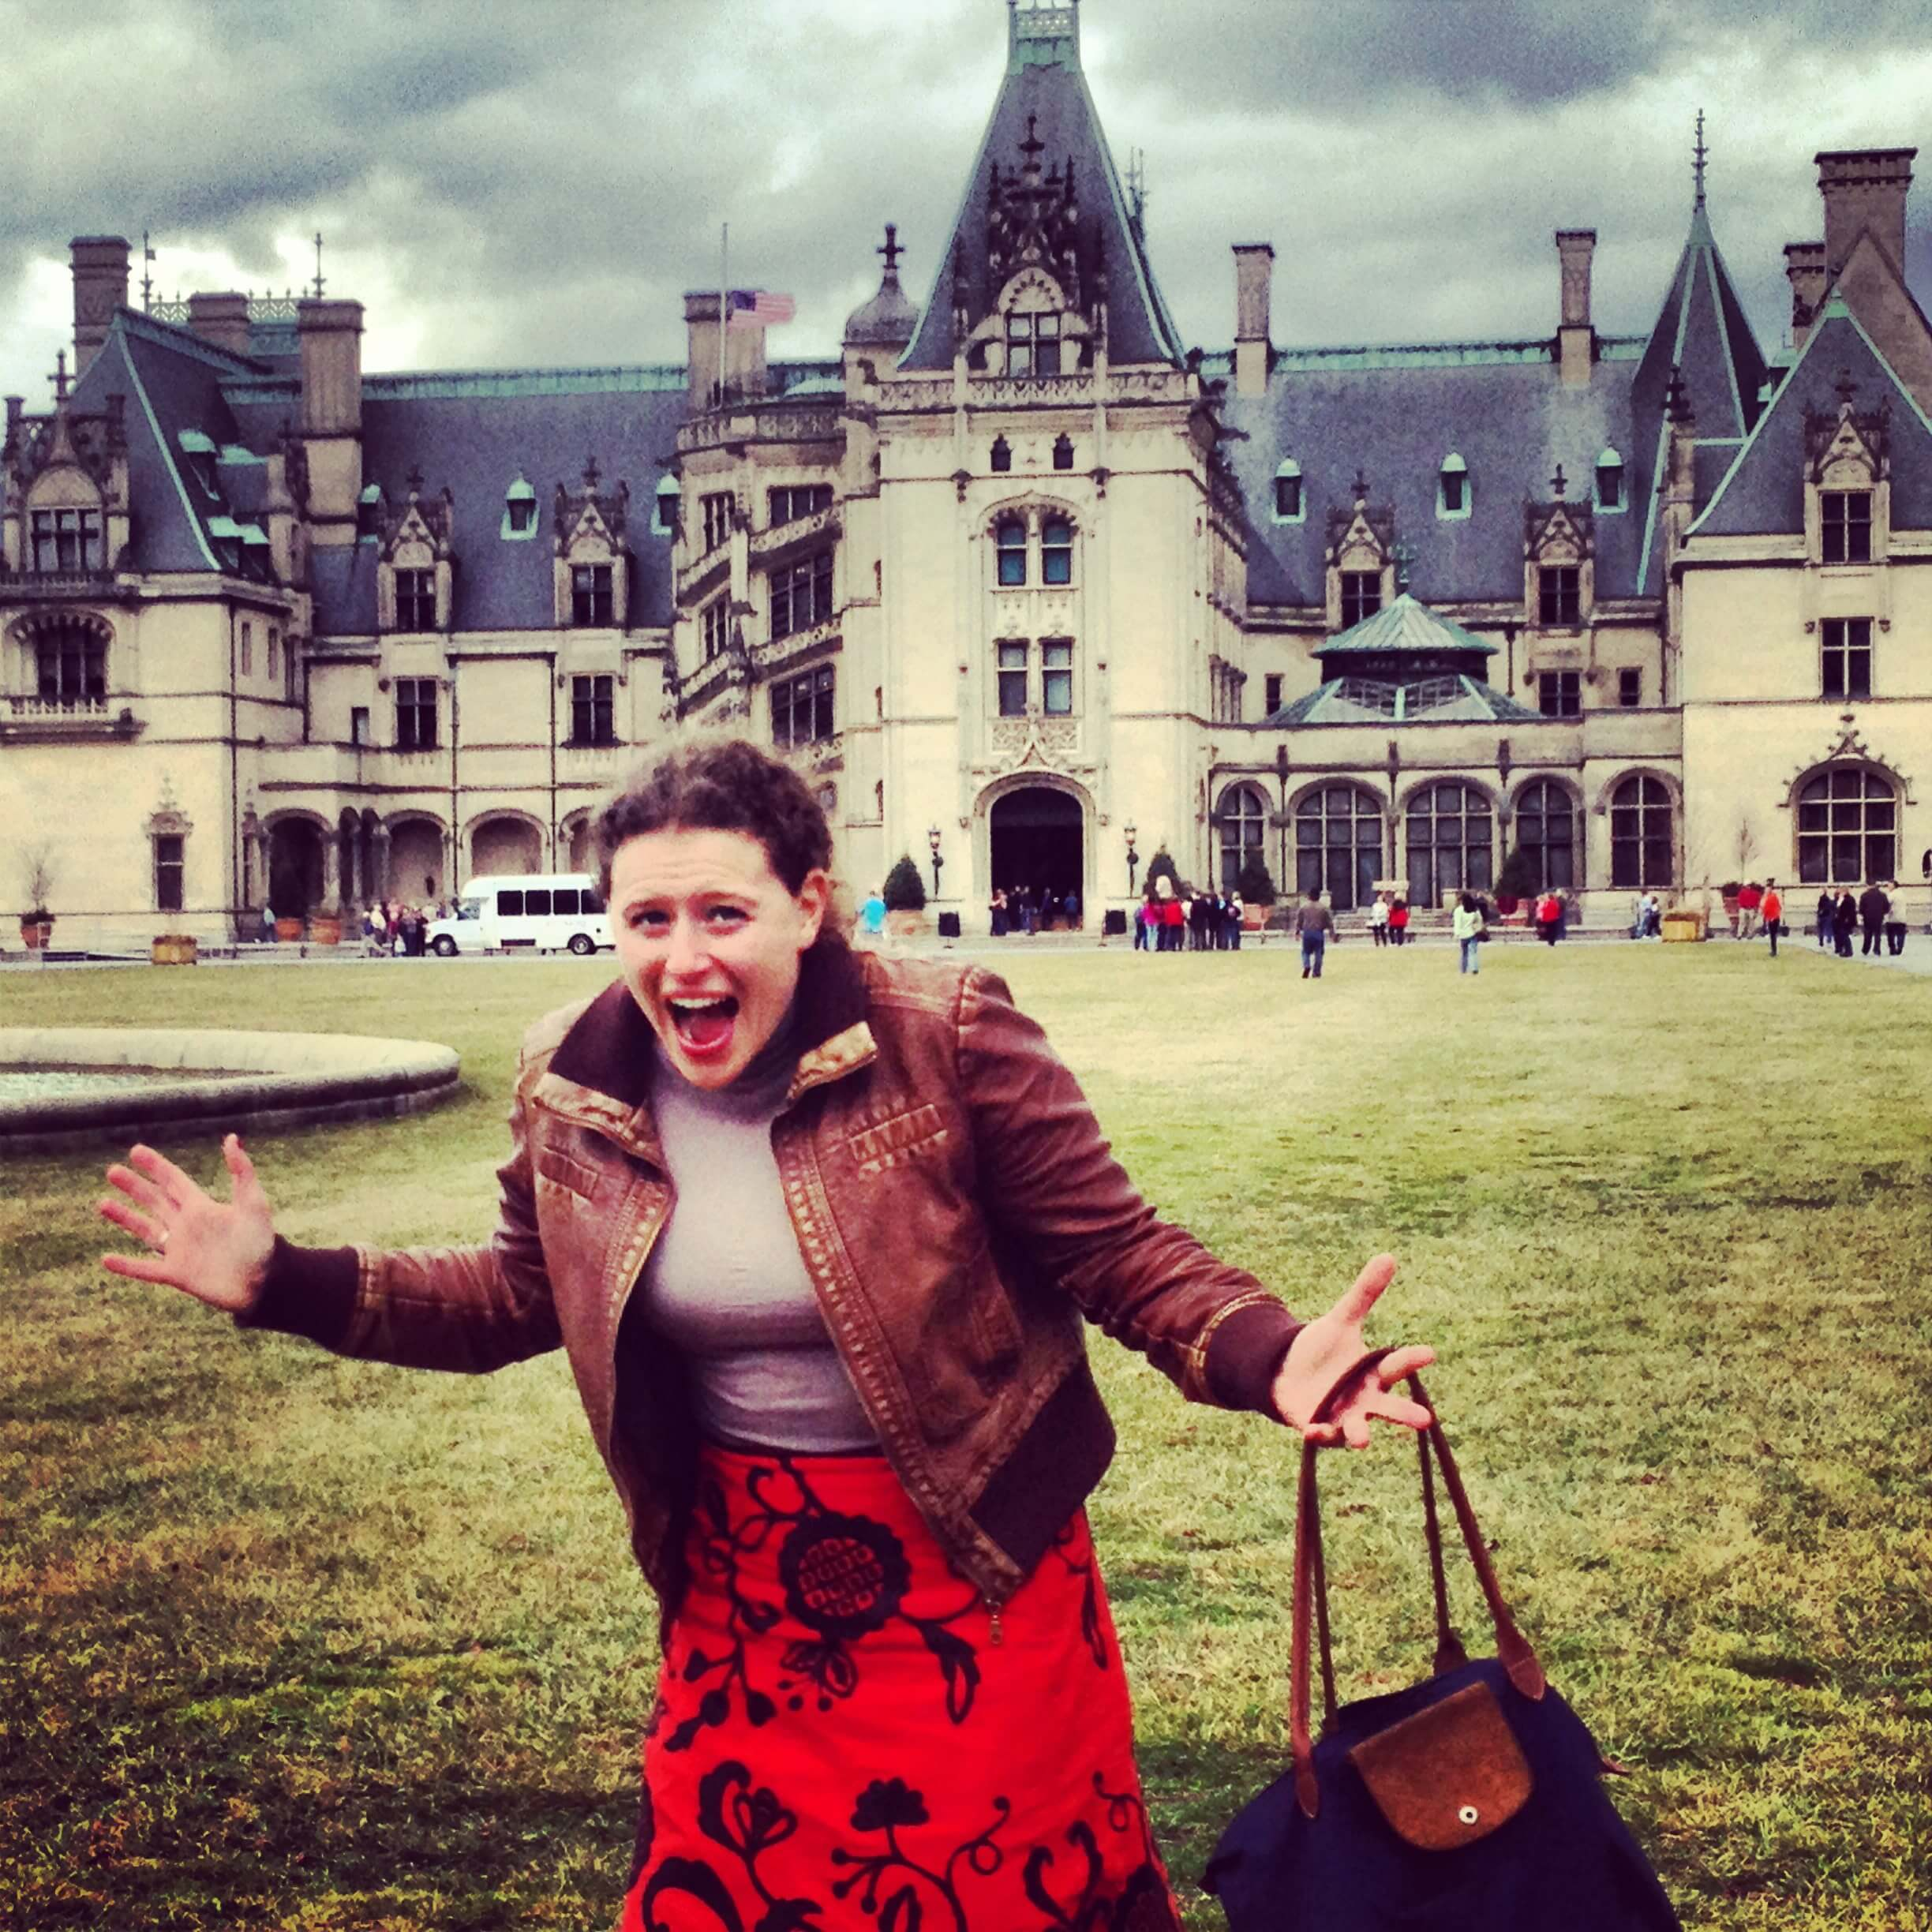 My excitement for Asheville (and the Biltmore) knows no bounds!